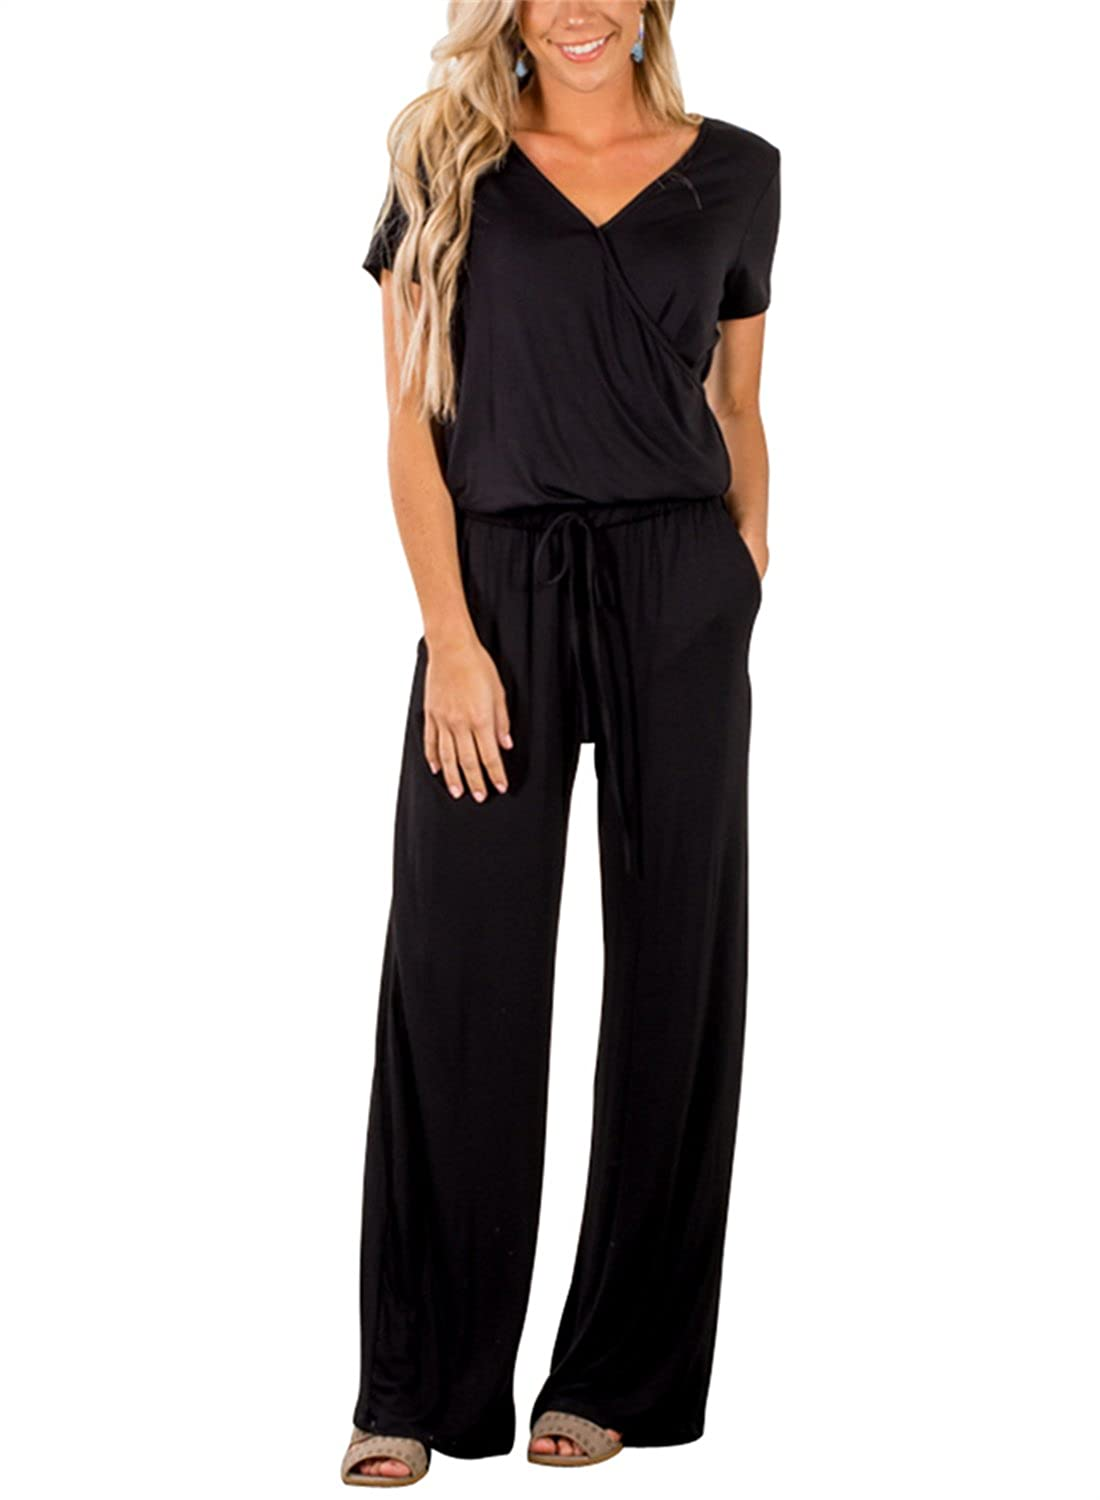 46bdfba7a499 Top1  Asyoly Women Casual Short Sleeve V Neck Loose Wide Legs Jumpsuits Long  Pants Rompers Pockets